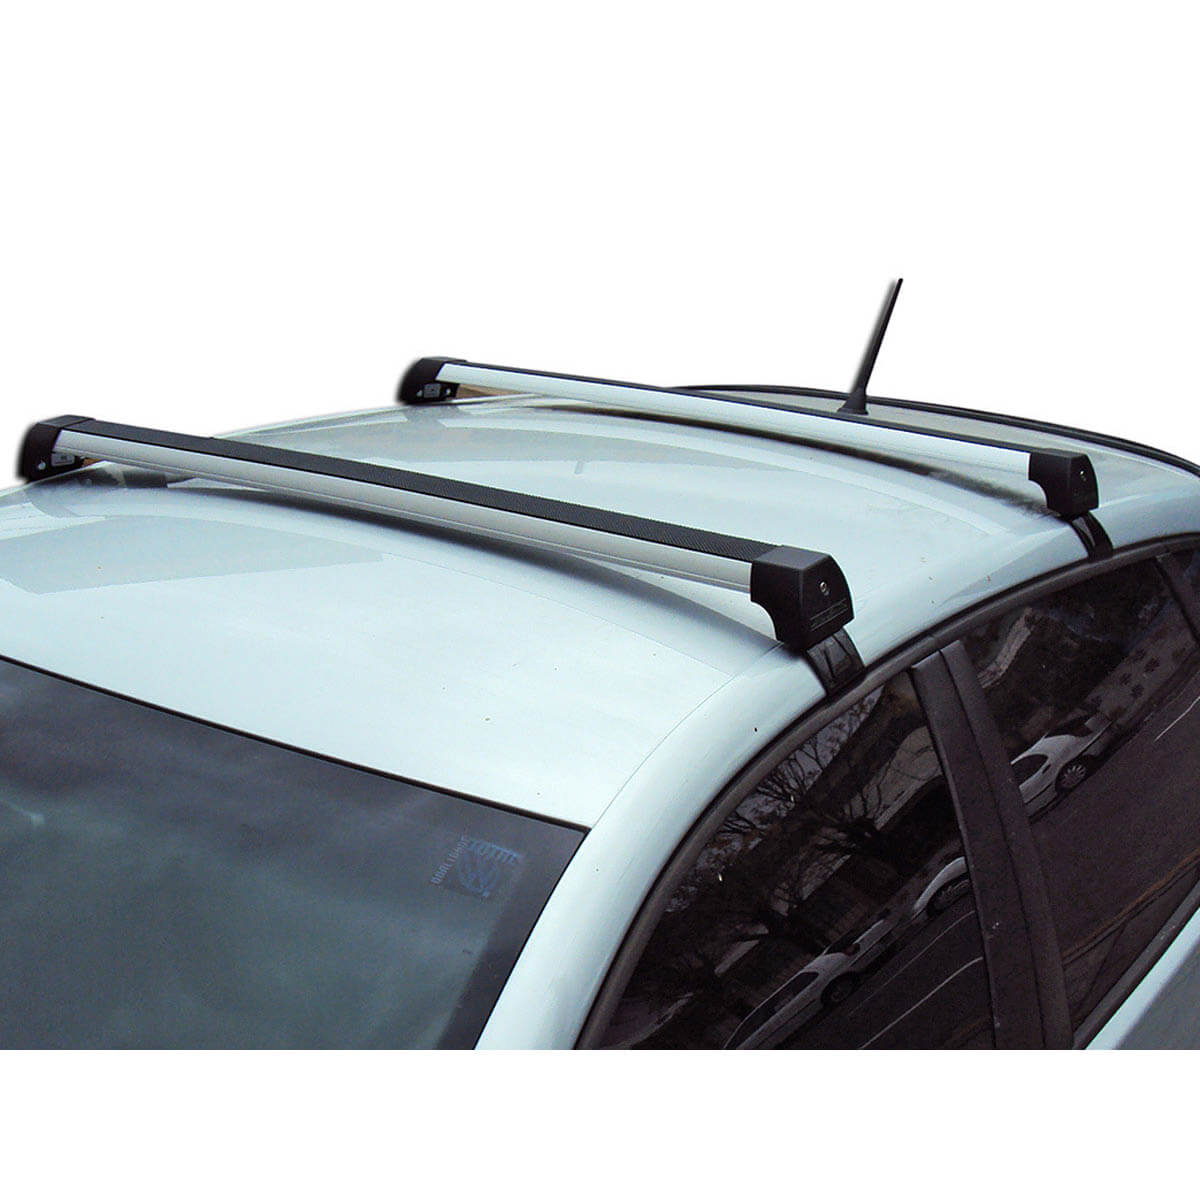 Rack de teto March 2012 a 2019 Long Life Sports anodizado